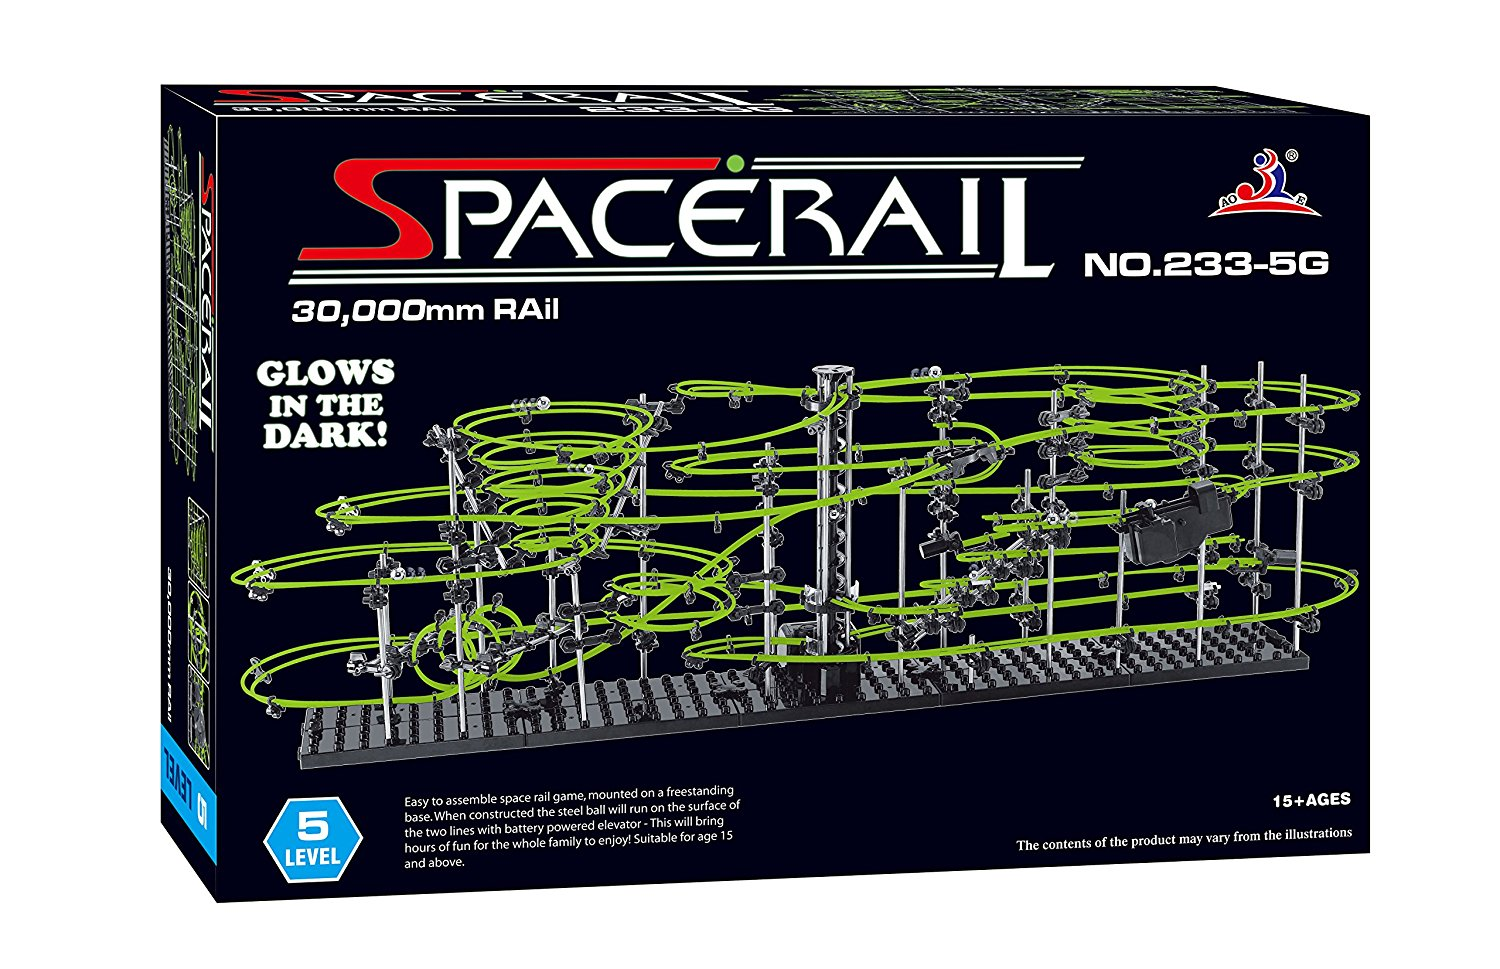 Space Rails 30,000mm Rail Level 5 by West toy